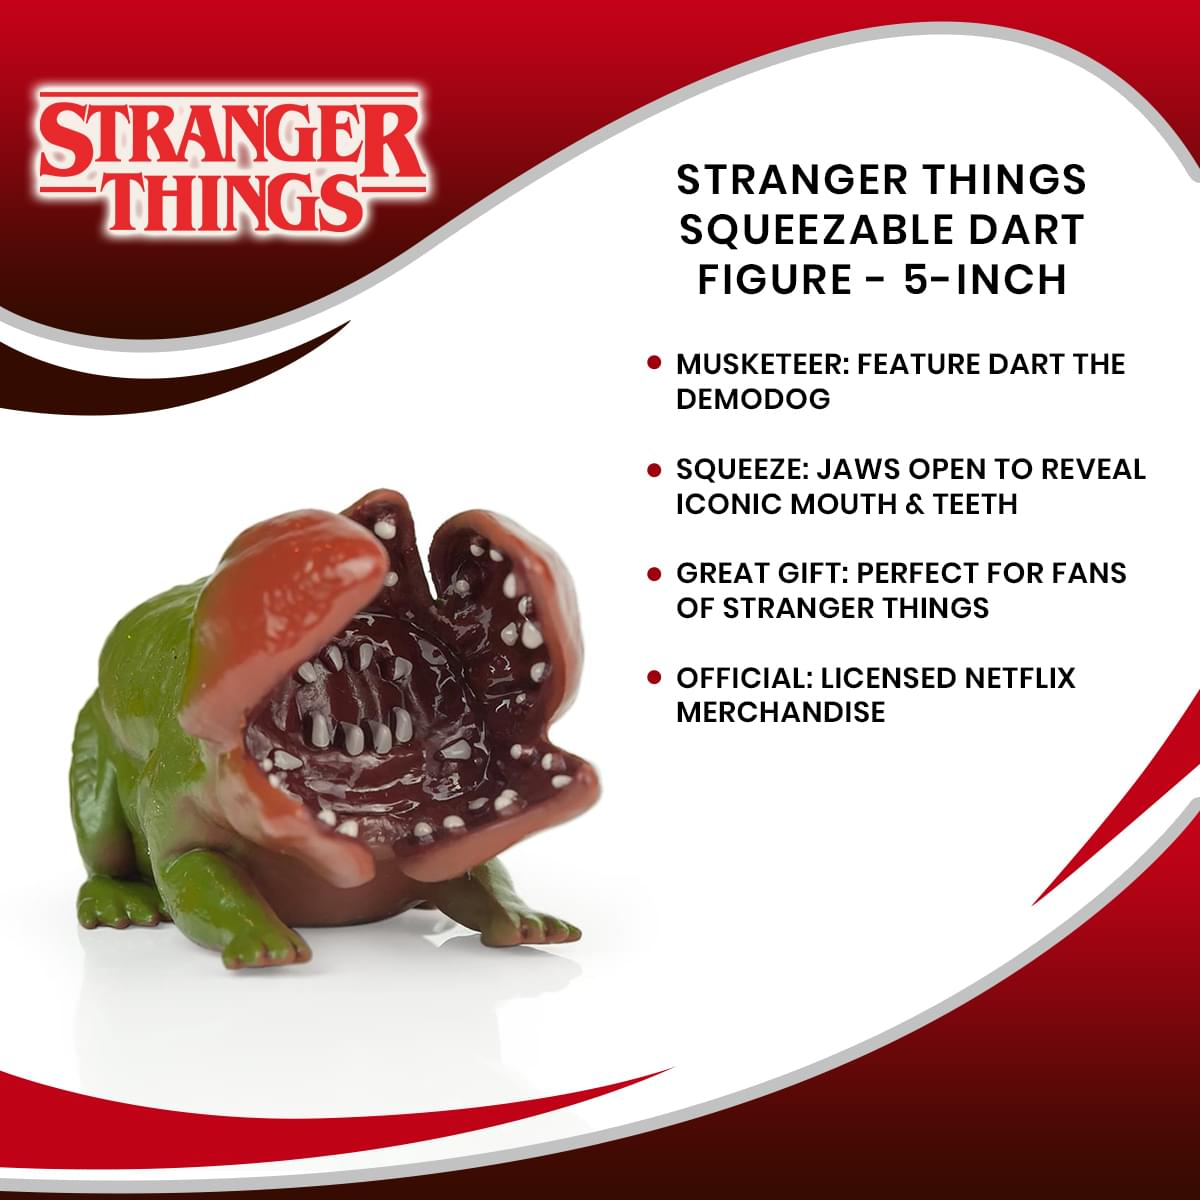 Stranger Things Squeezable Dart Figure - 5-Inch